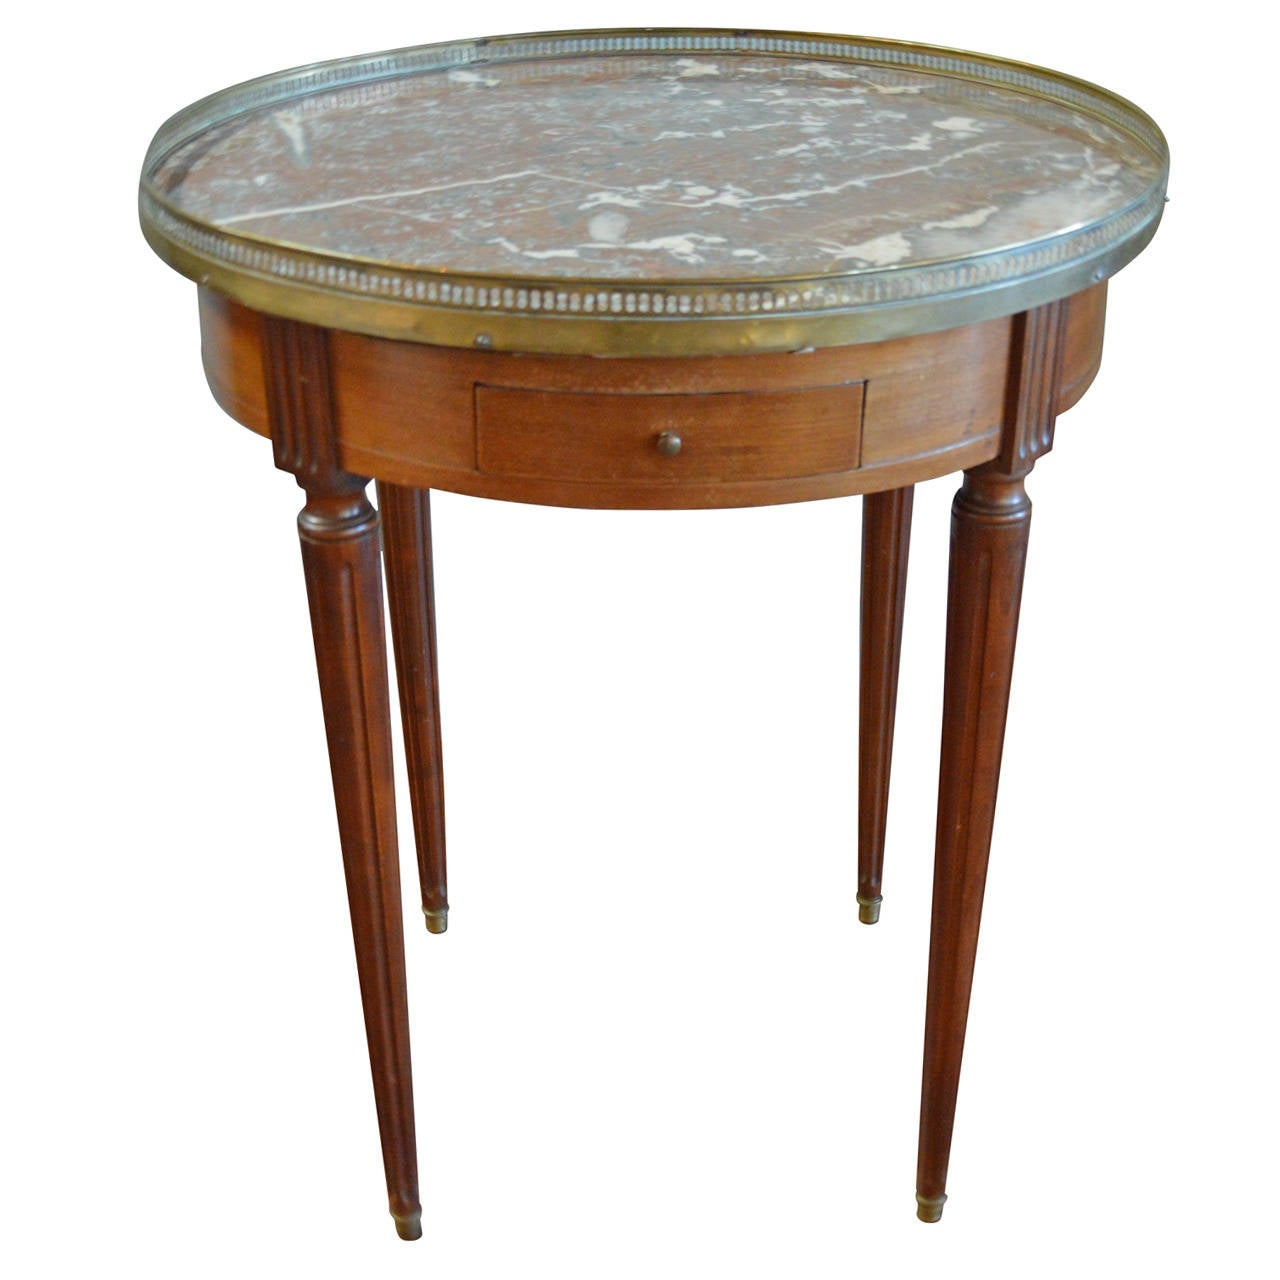 louis xvi style mahogany bouillotte table for sale at 1stdibs. Black Bedroom Furniture Sets. Home Design Ideas